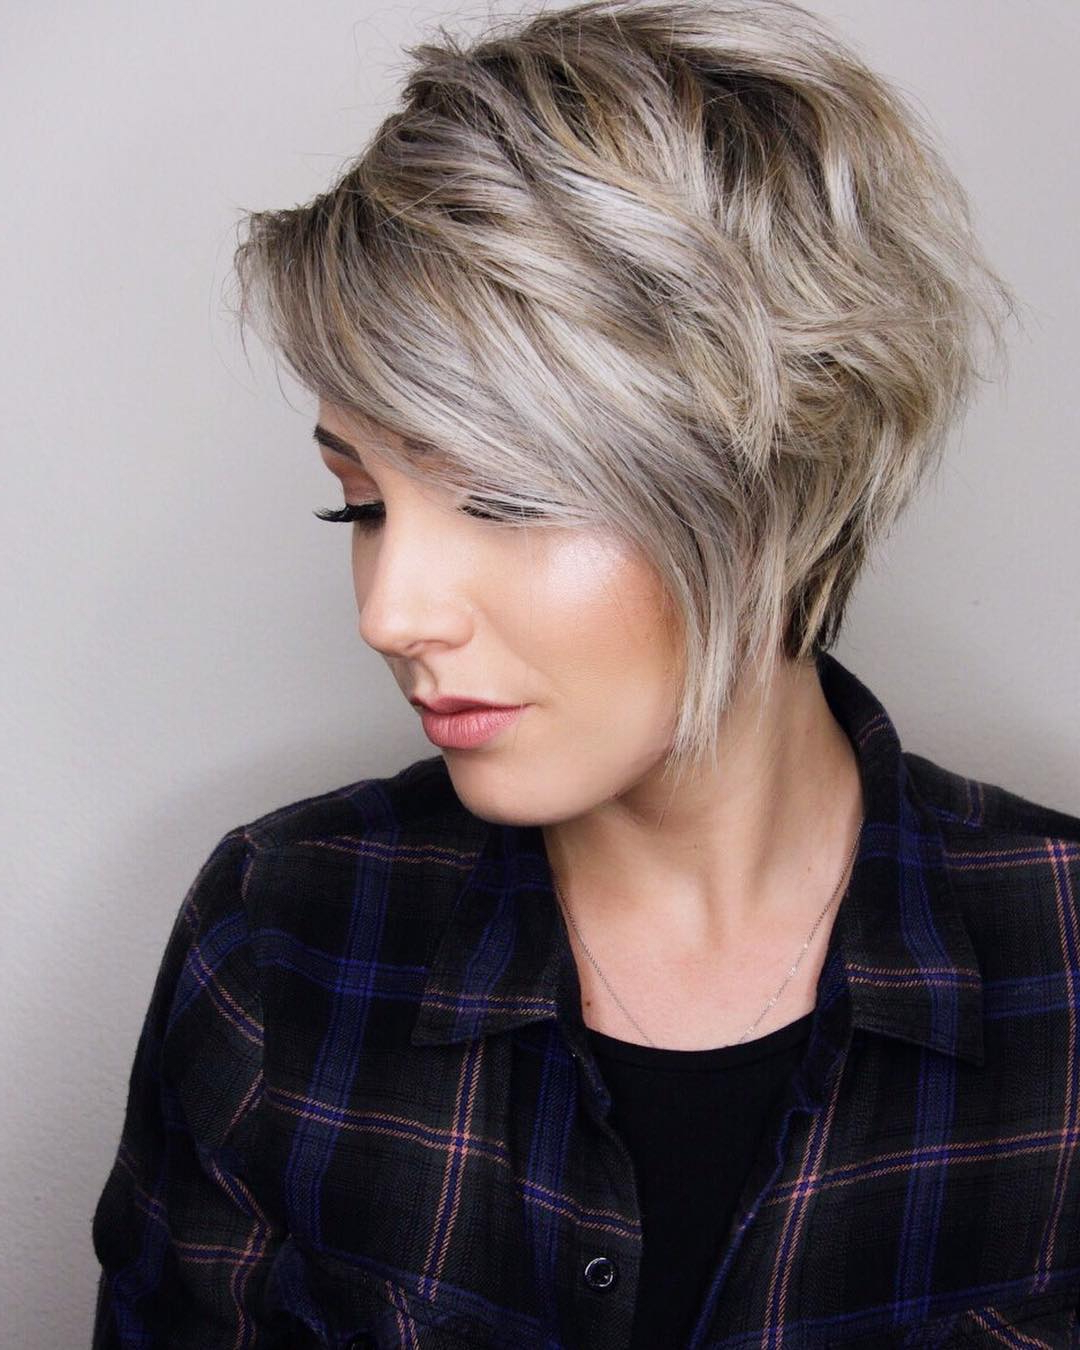 10 Trendy Layered Short Haircut Ideas For 2017  2018 – 'extra In Pixie Layered Short Haircuts (View 3 of 25)